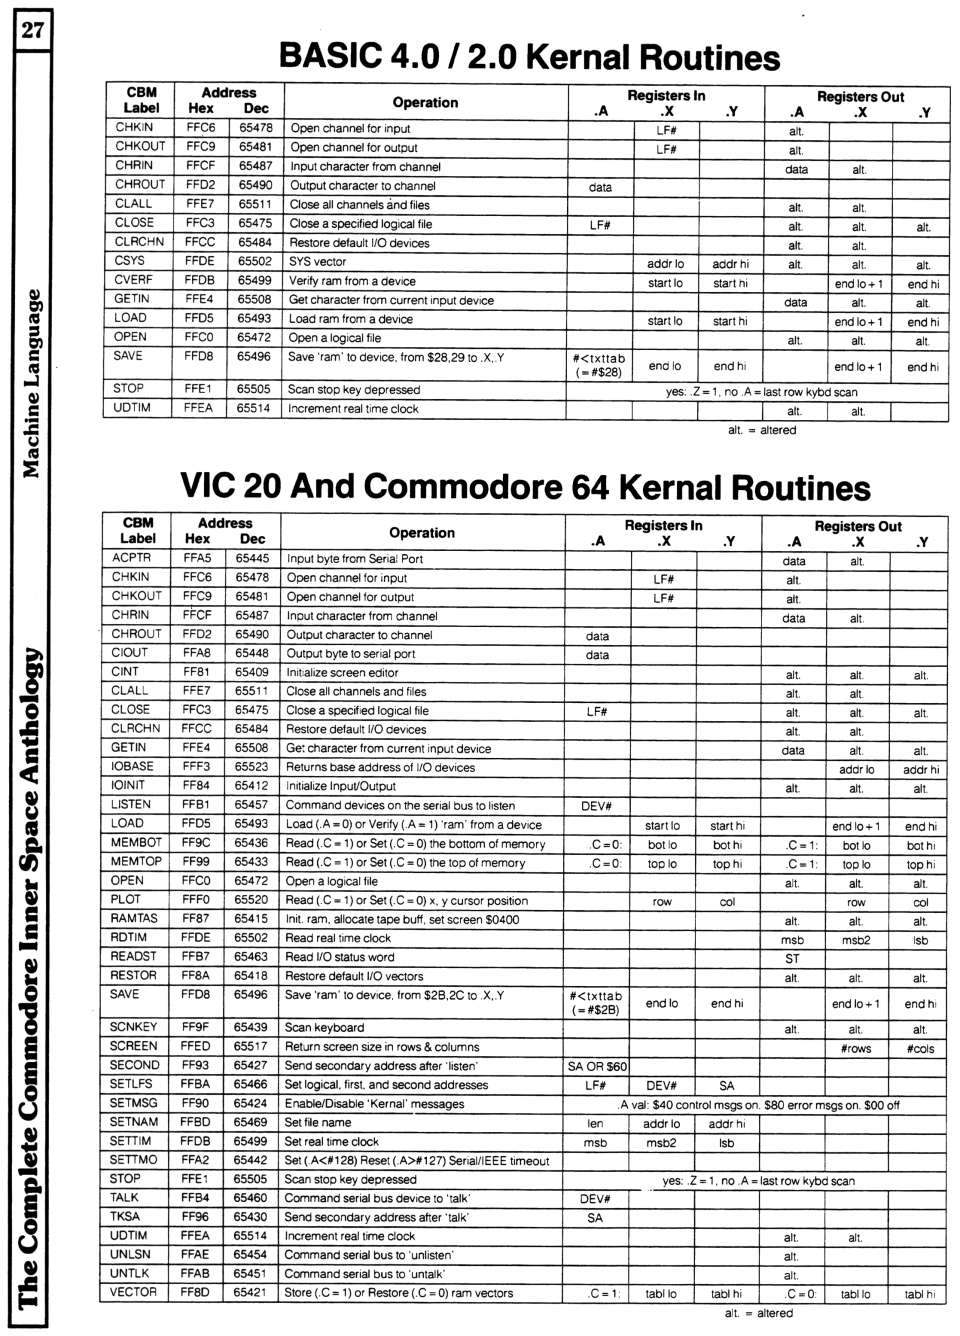 [960�1336 Machine Language Section: BASIC 2.0/4.0 Kernal Routines, VIC 20/Commodore 64 Kernal Routines]